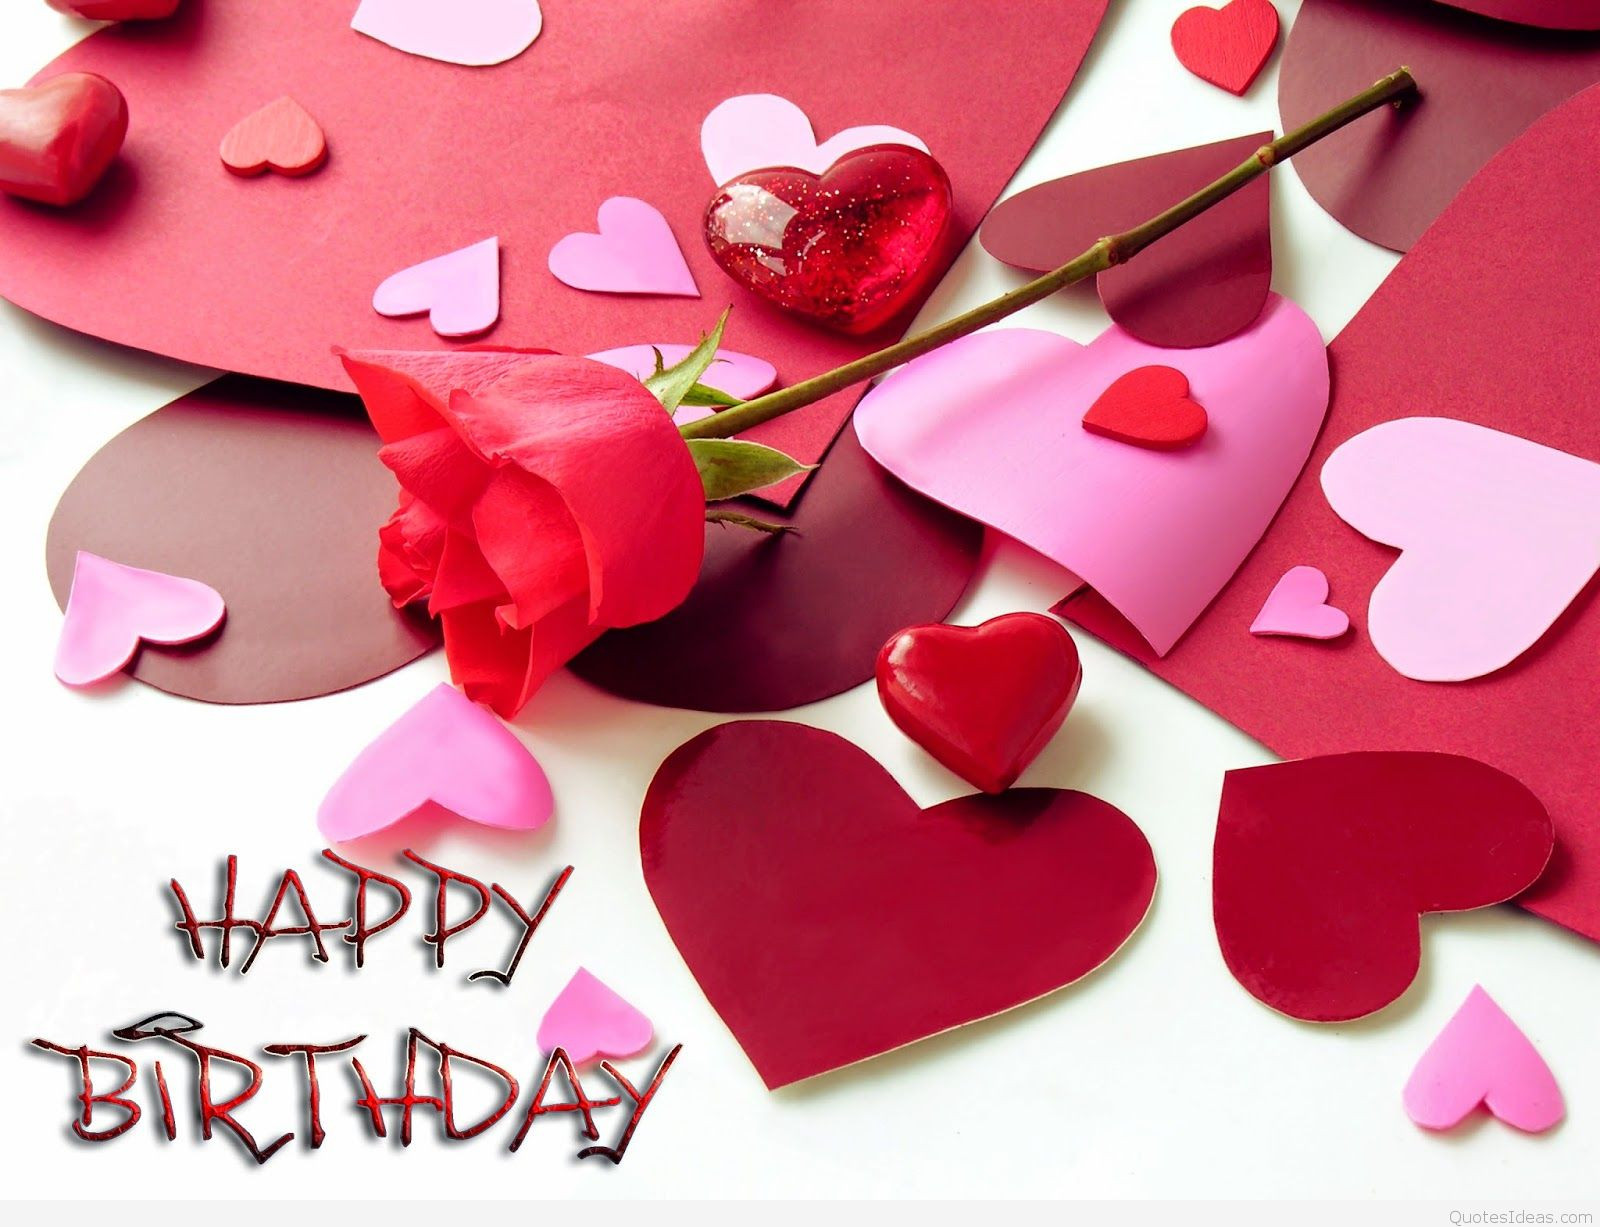 Cutest Birthday Wishes  Cute Happy Birthday Wishes The Cutest Birthday Messages